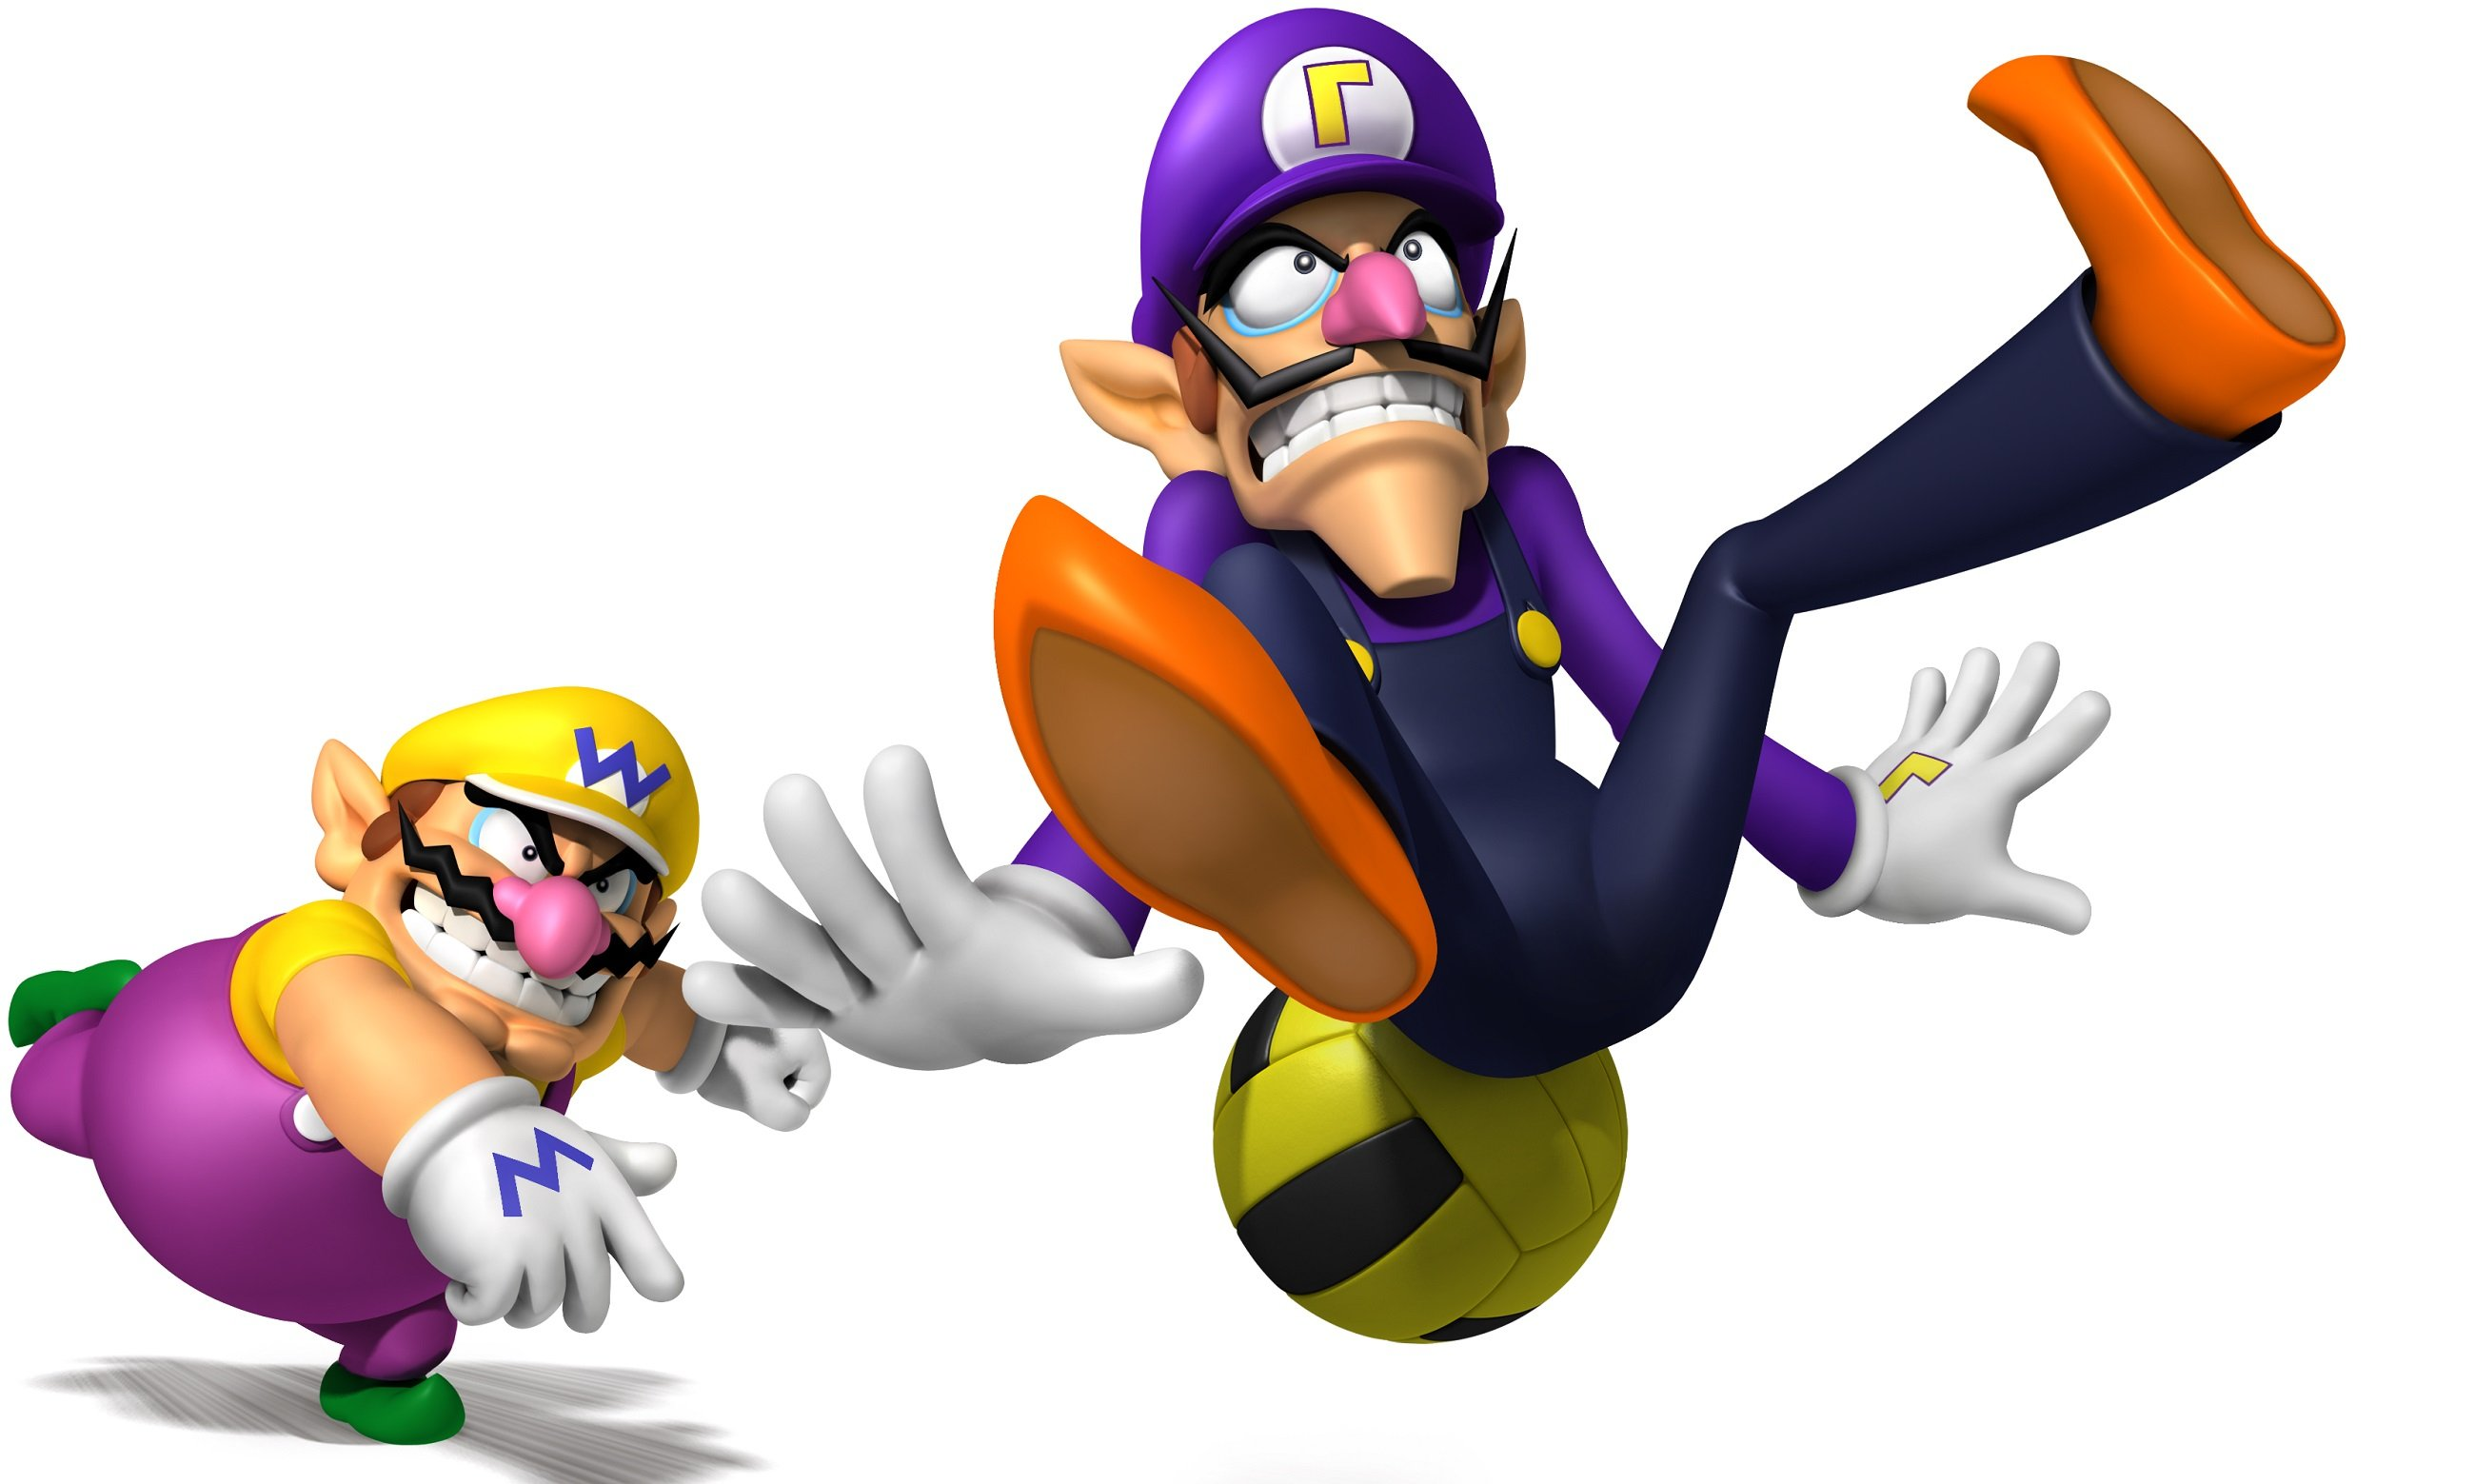 Will Waluigi Ever Join Super Smash Bros Ultimate As A Playable